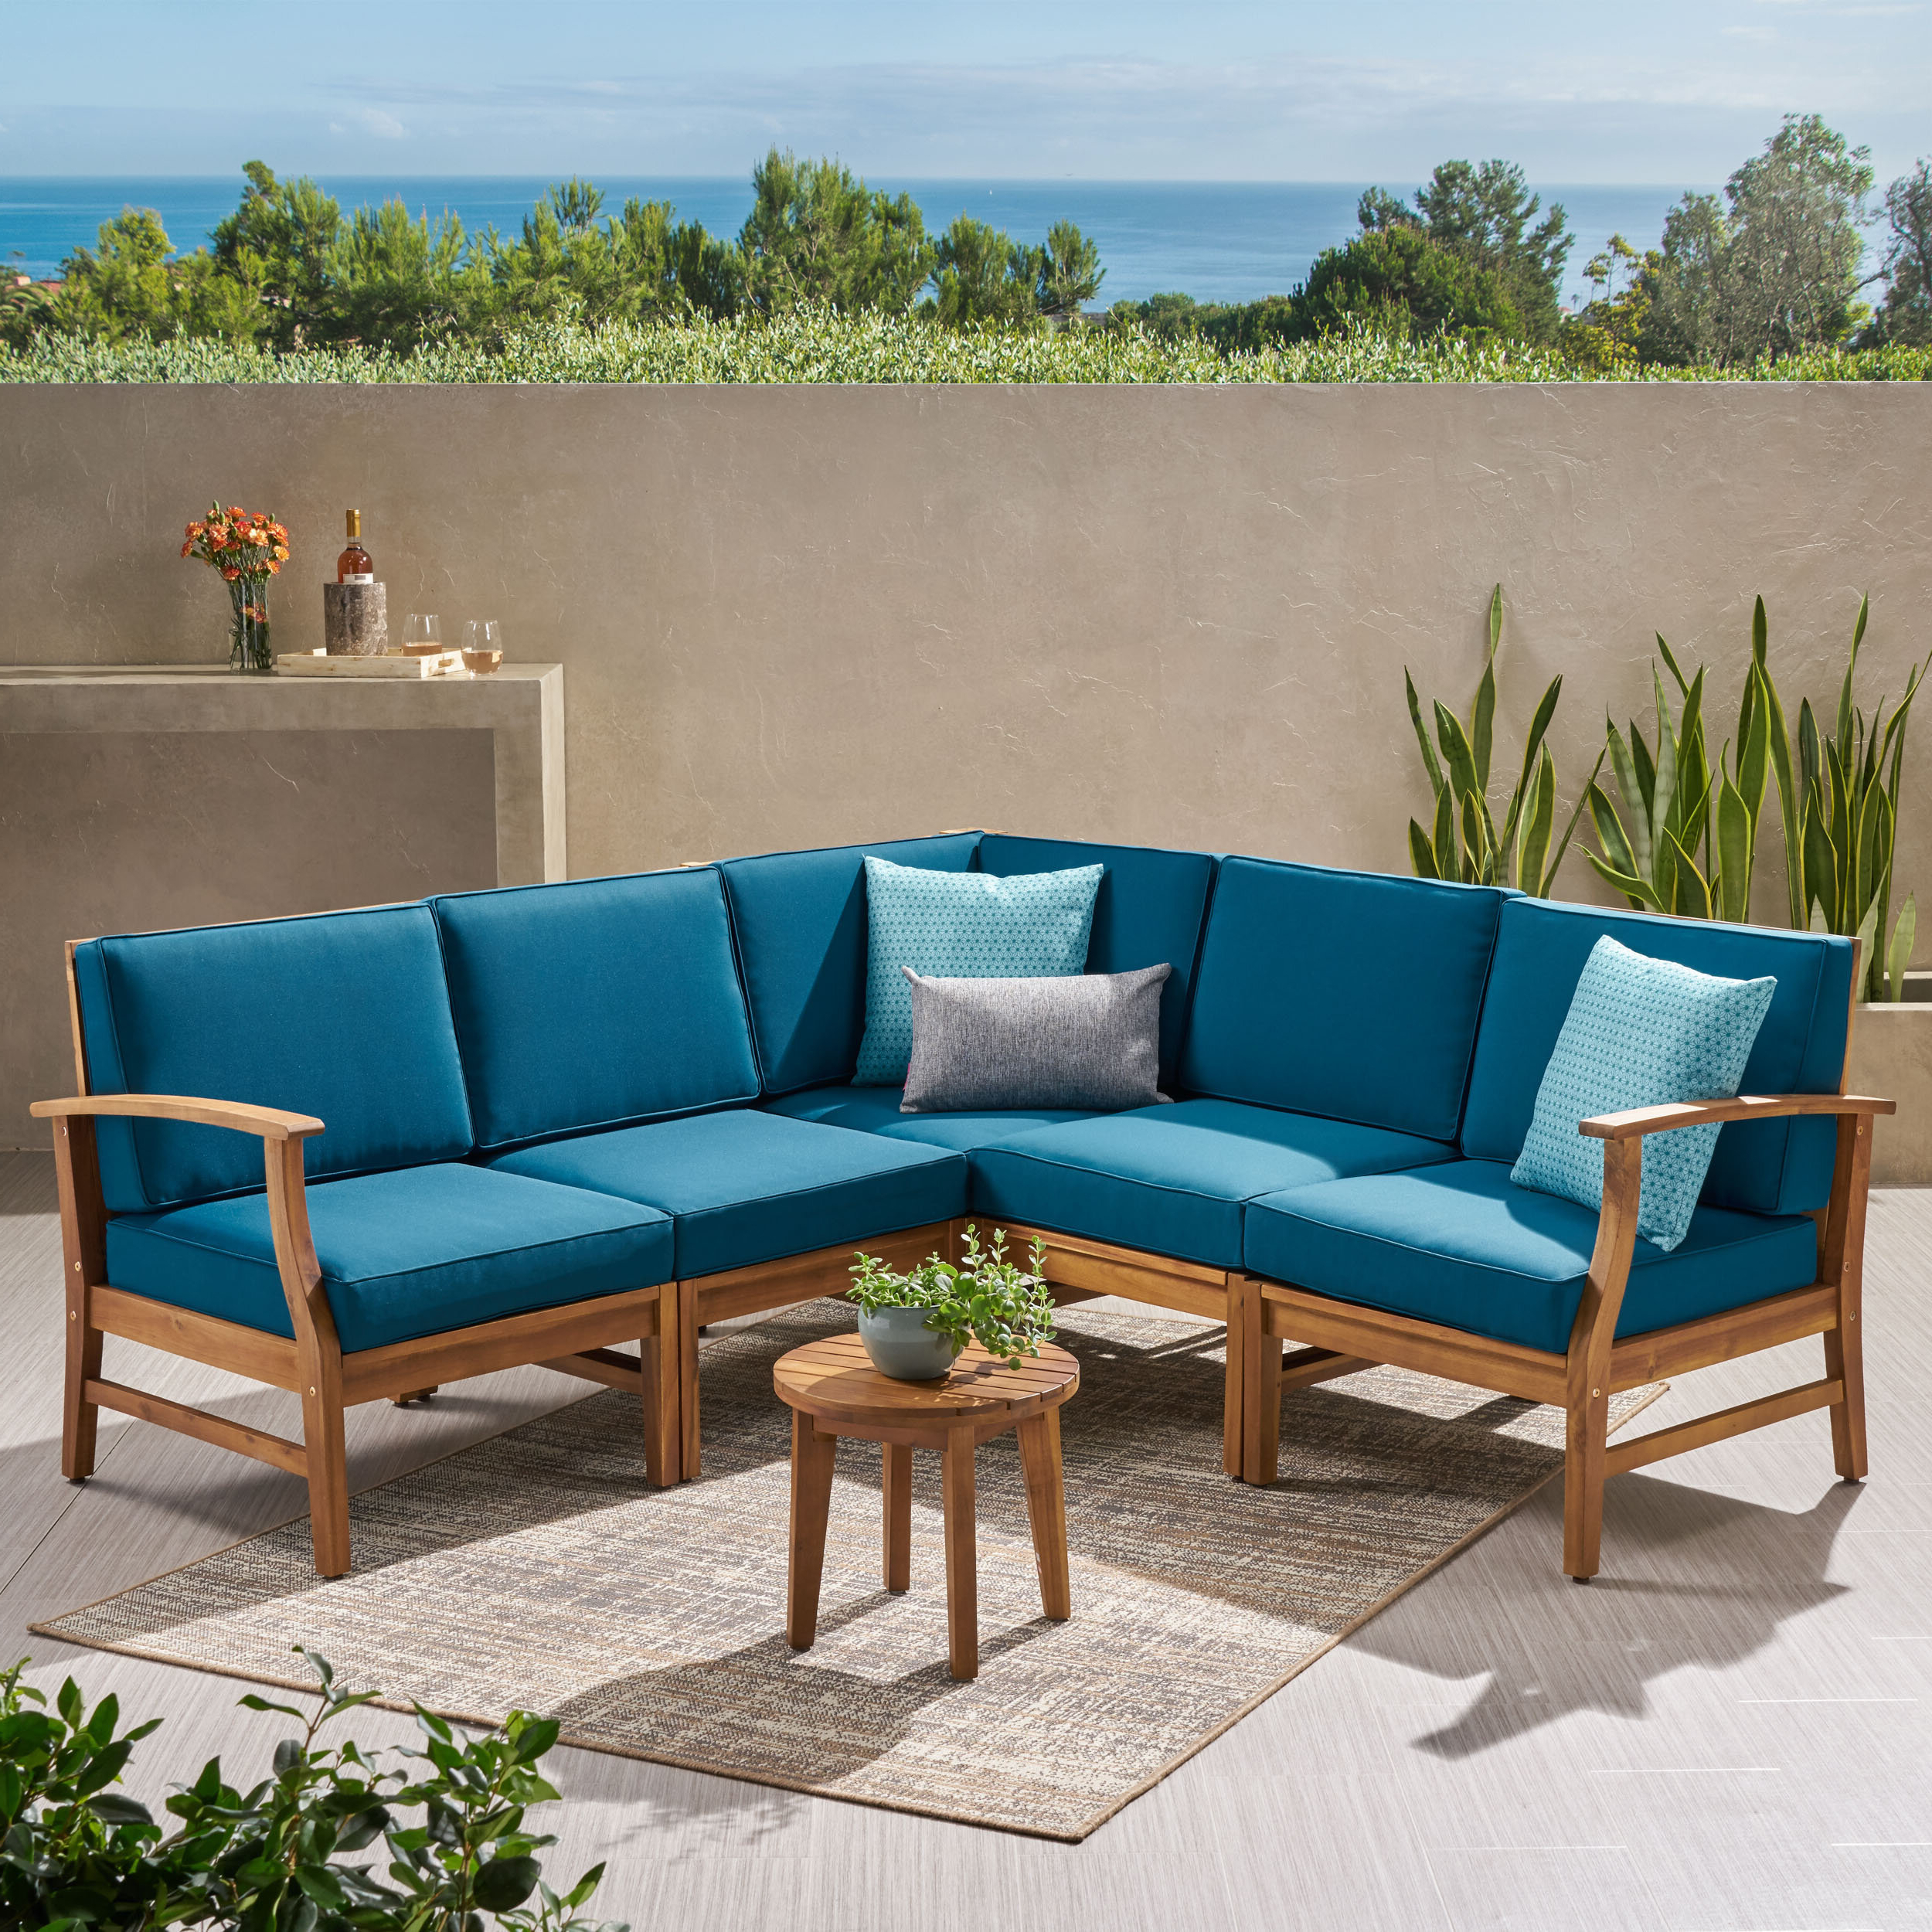 Well Liked Antonia Teak Patio Sectional With Cushions With Regard To Antonia Teak Patio Sectionals With Cushions (View 25 of 25)